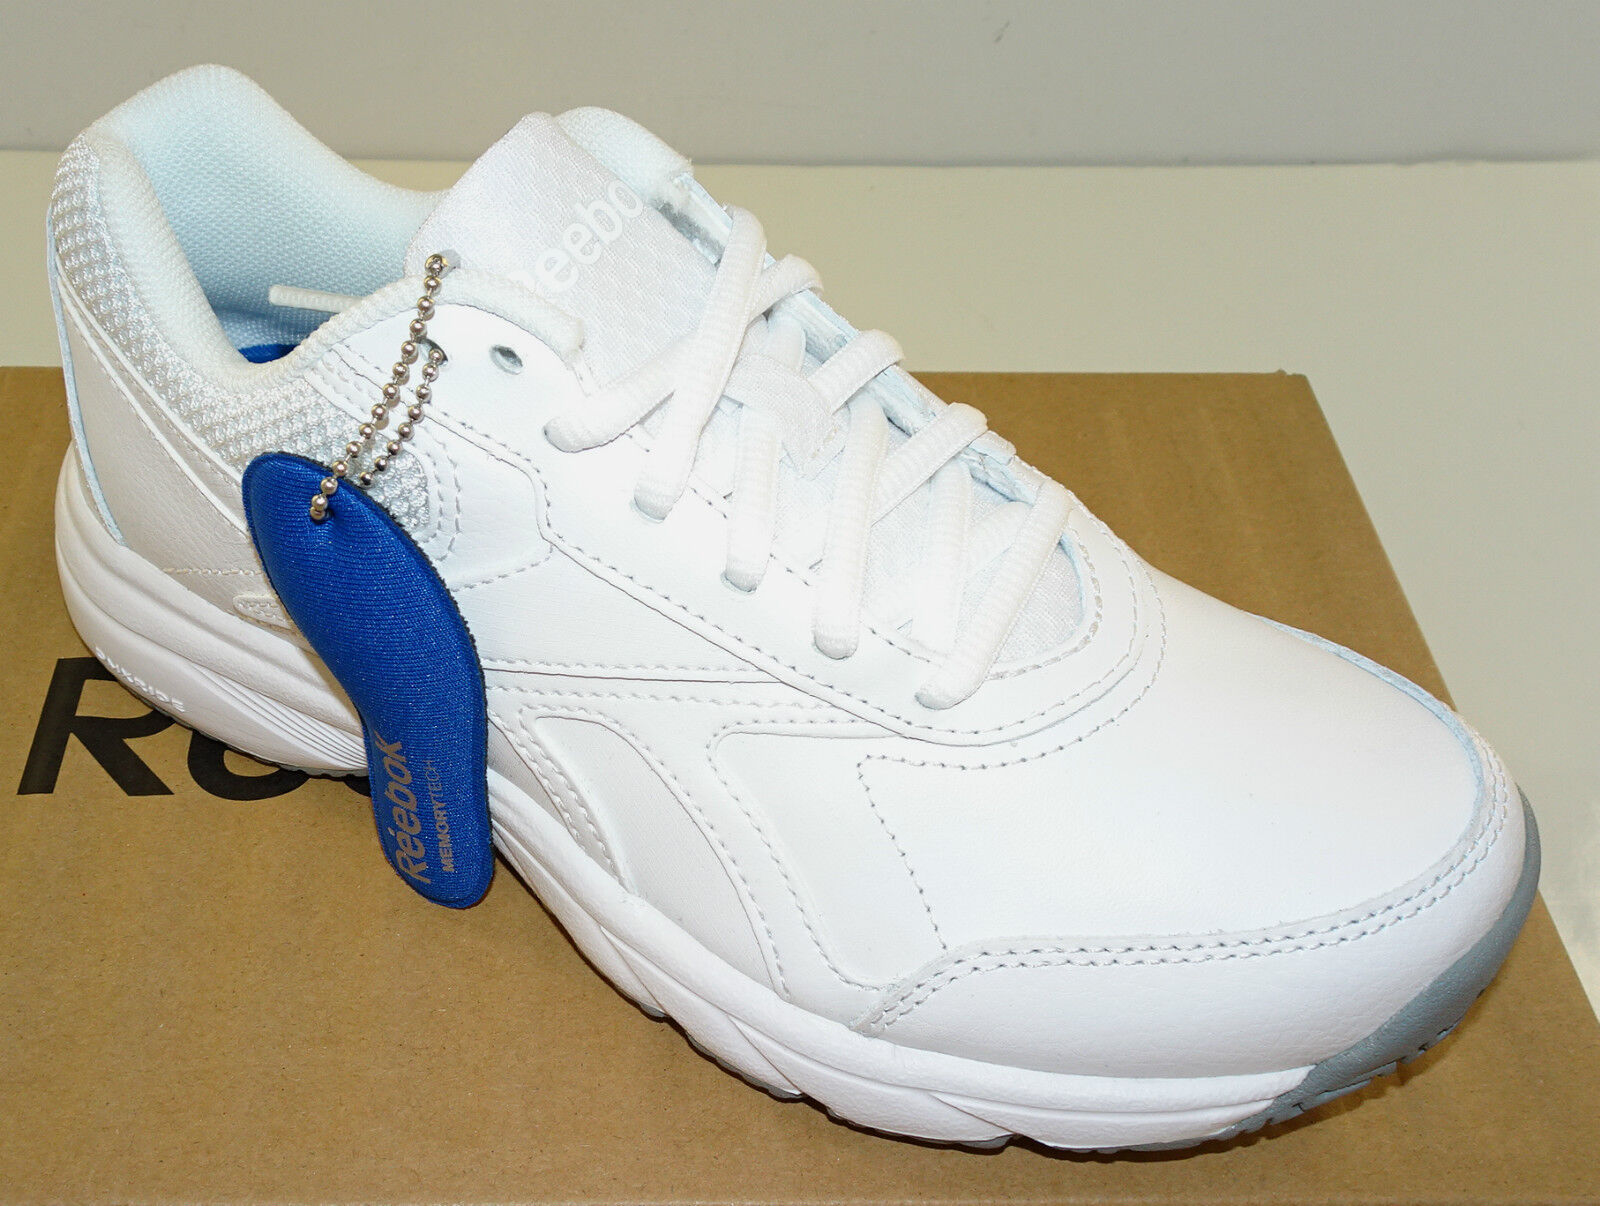 REEBOK Women's Work n' Cushion Walking shoes V70618 Oil Slip Resistant White